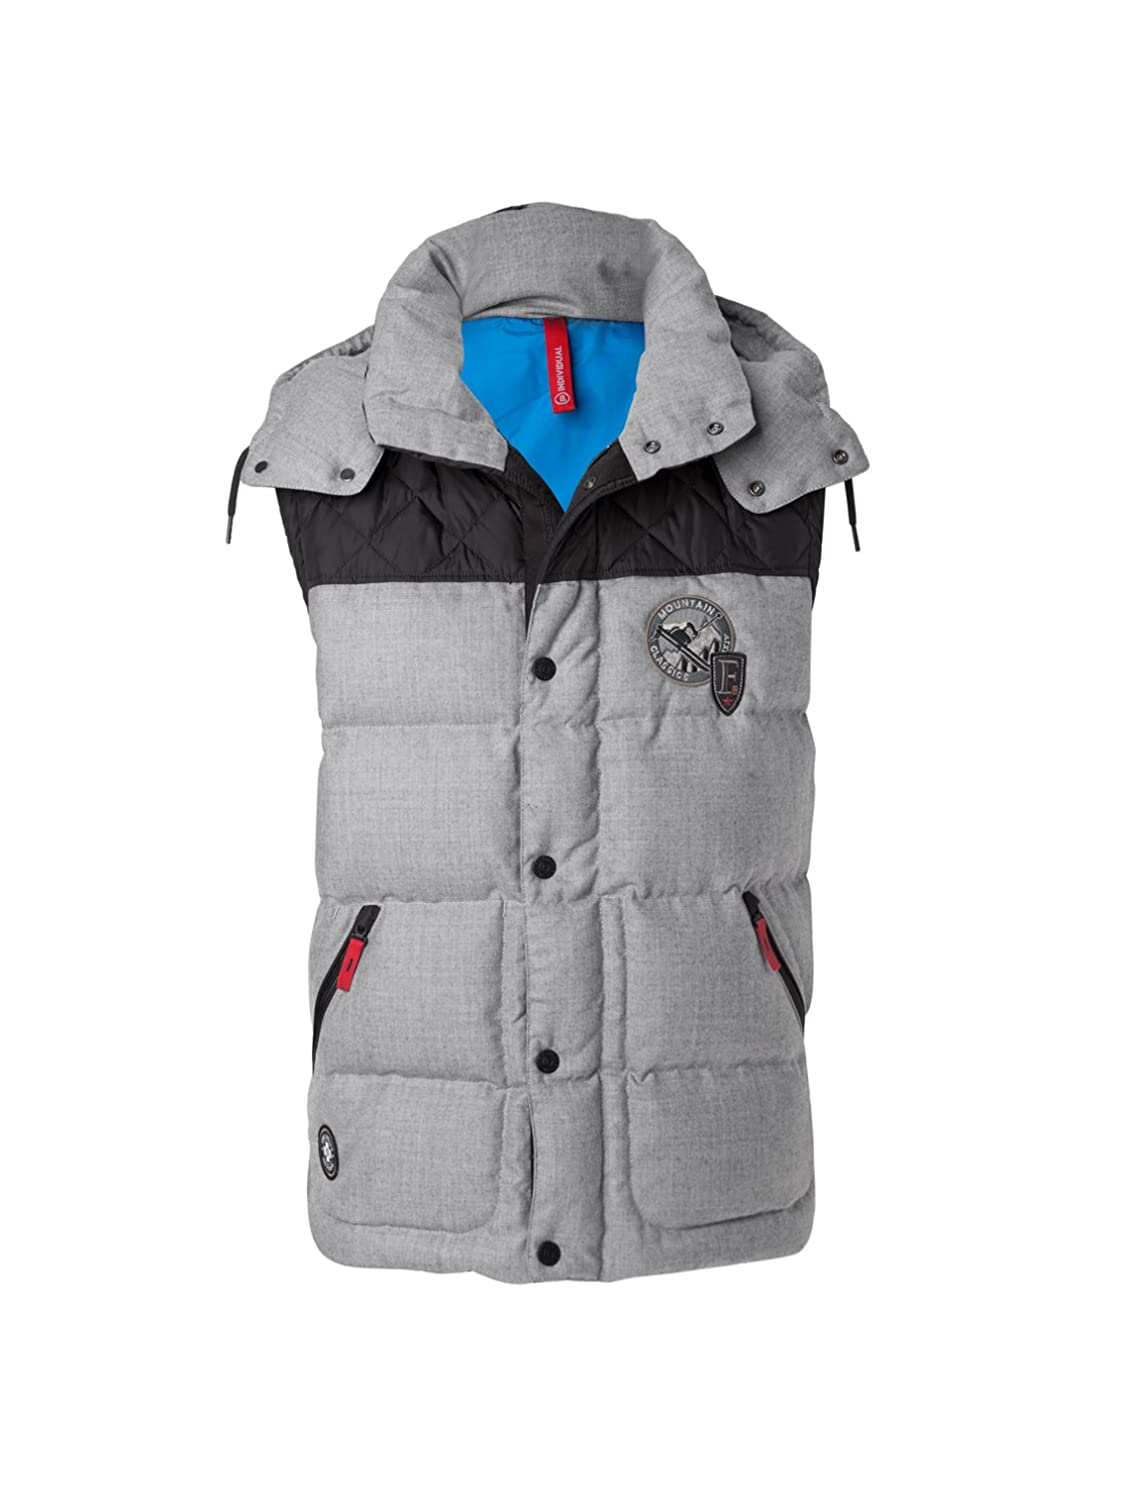 Bogner Fire + Ice Herren Weste Jay-D günstig kaufen